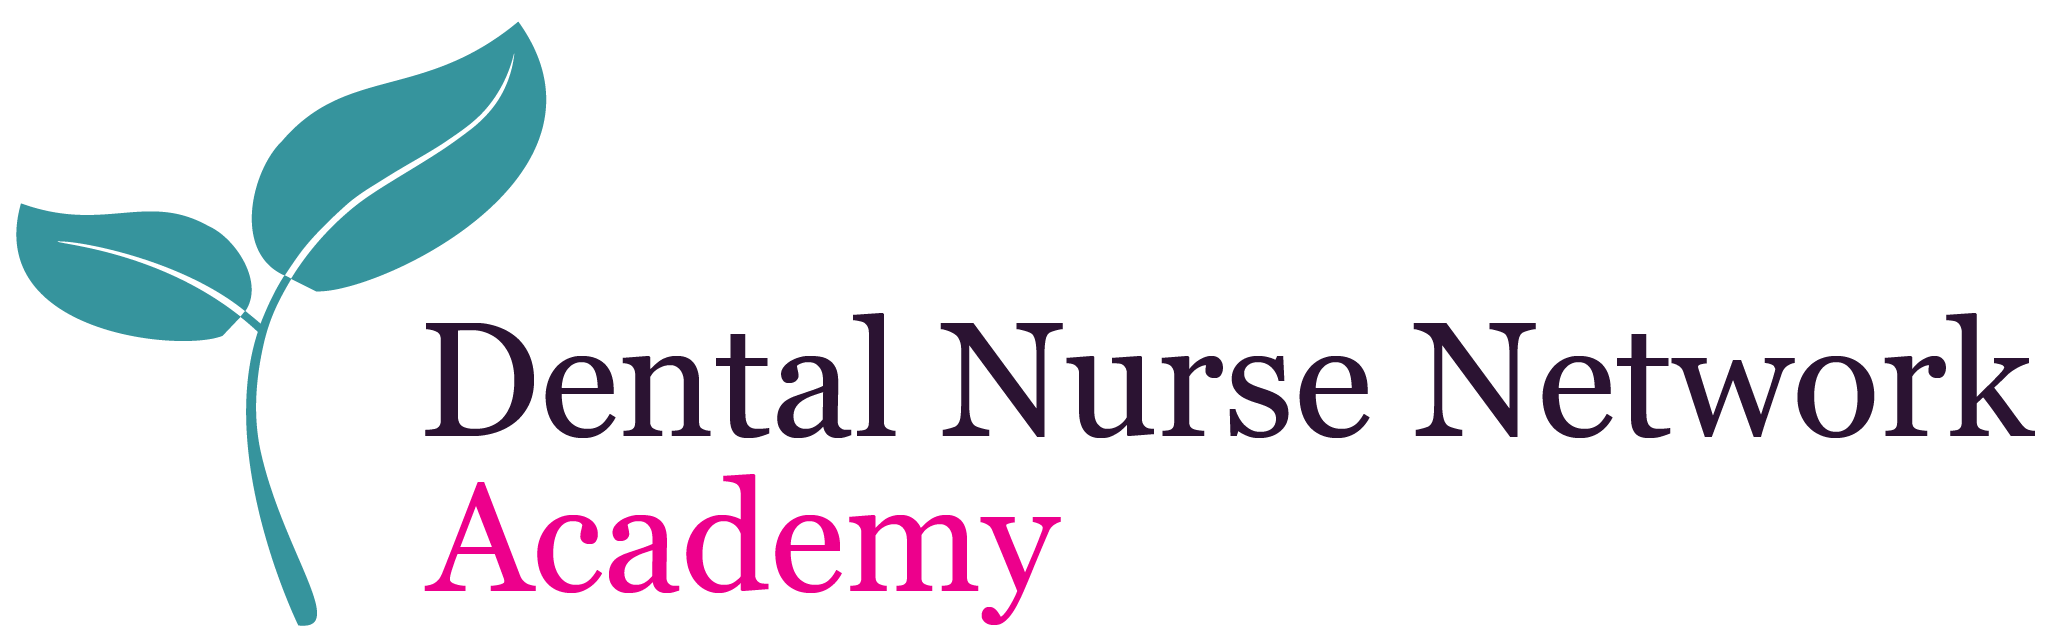 Dental Nurse Network Academy